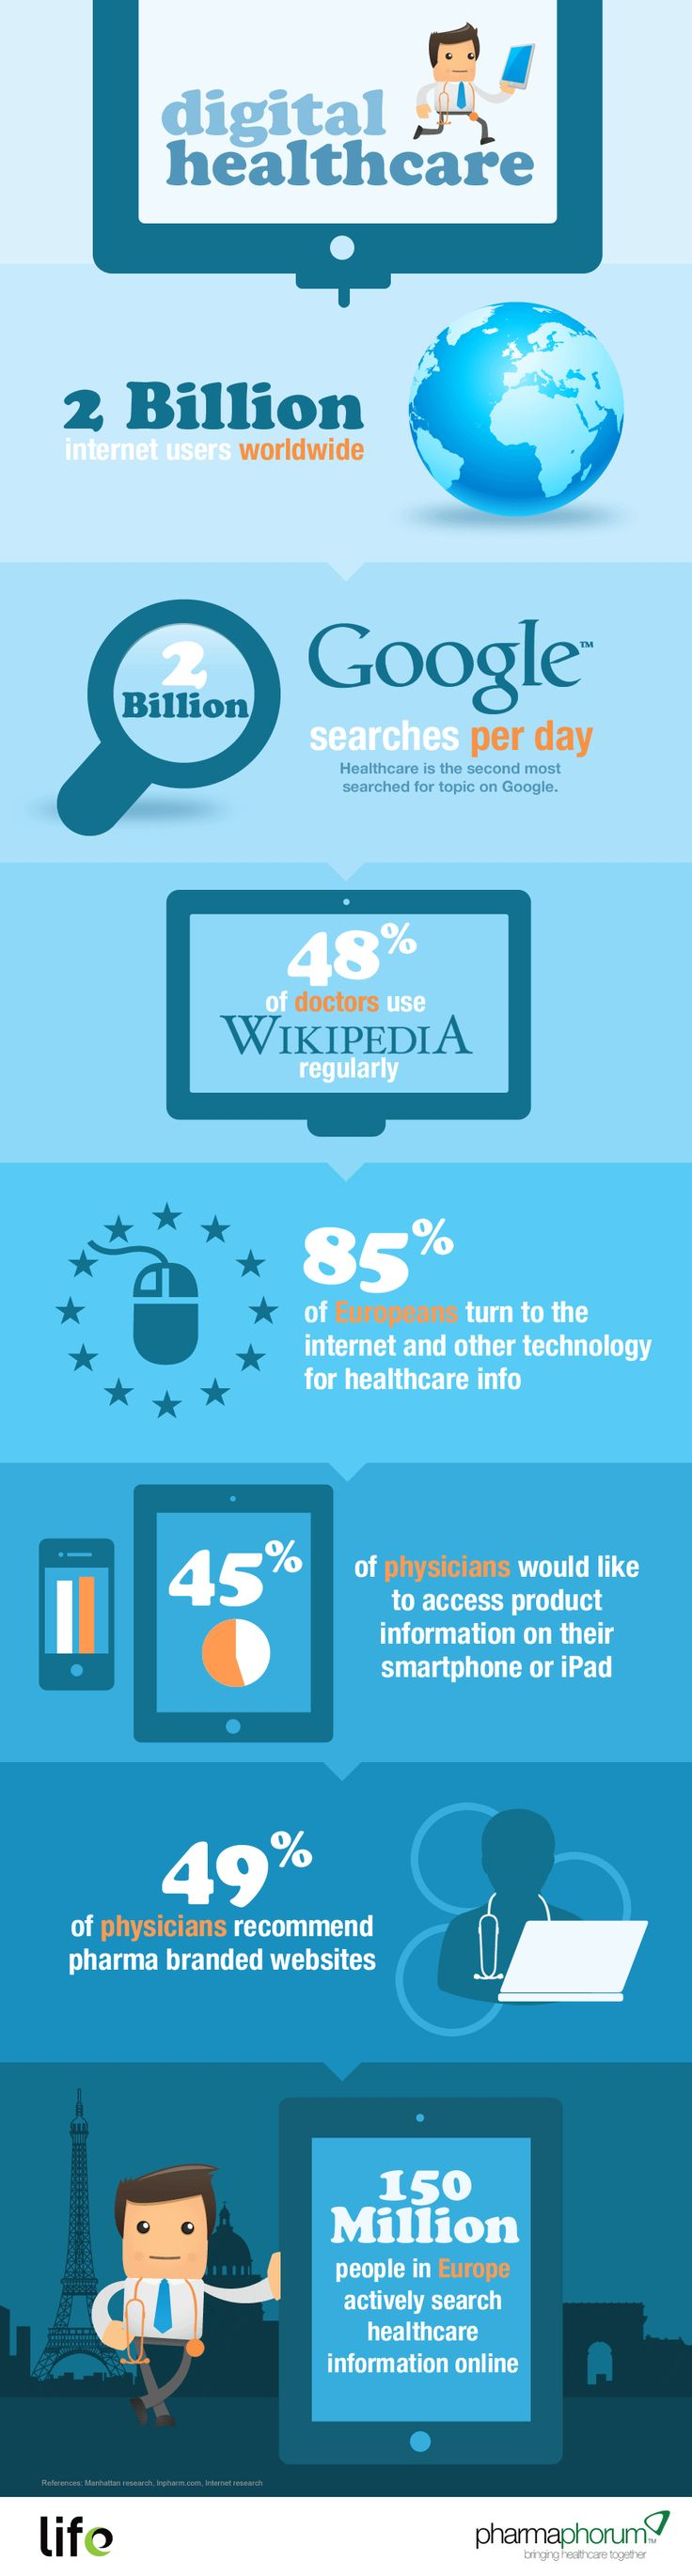 Digital healthcare infographic :) - #HealthcareIT